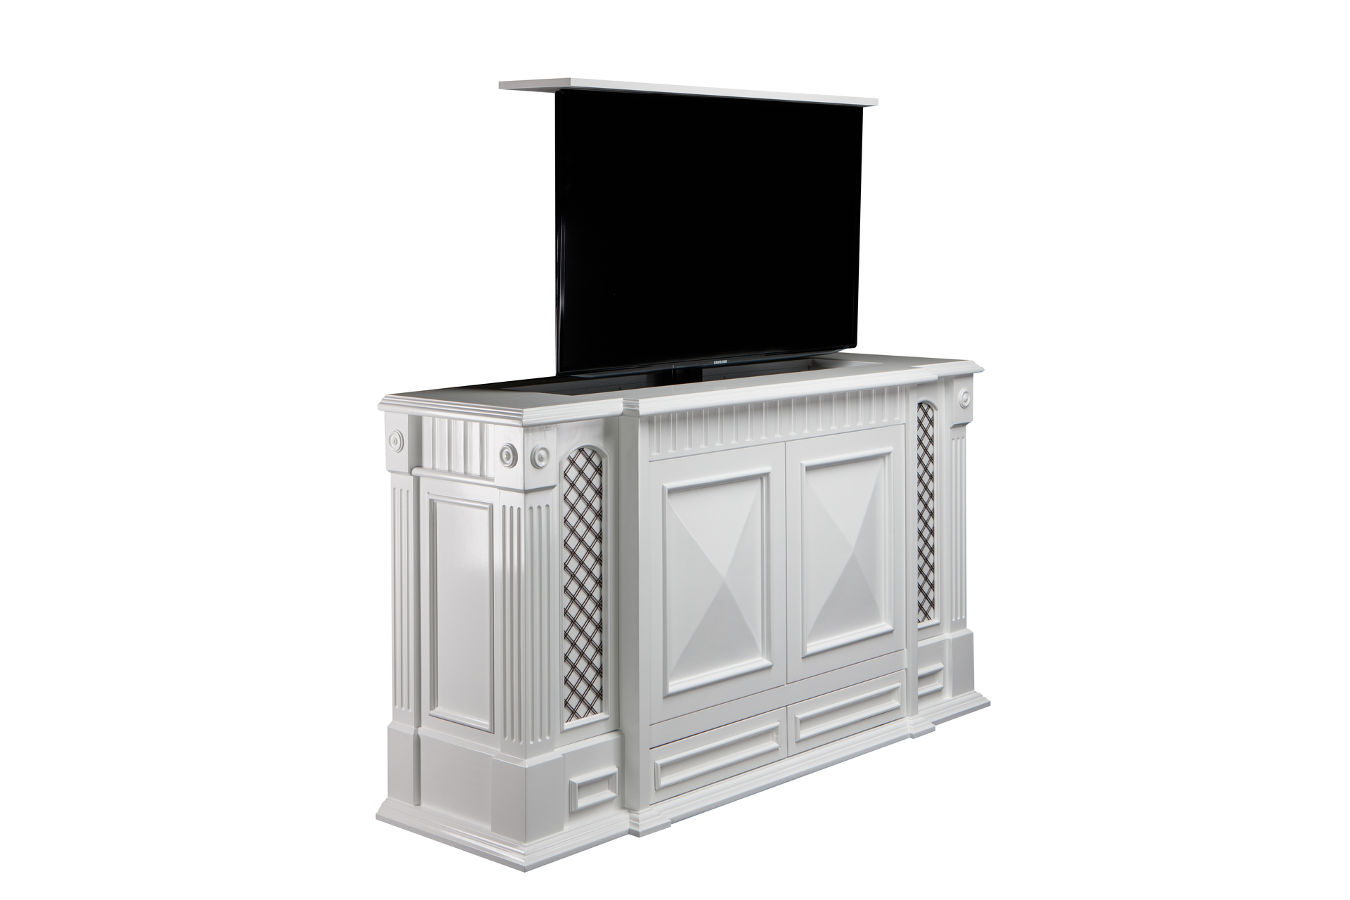 Stunning Carlyle White Satin Costco TV Lift cabinet is hand carved,  Made in US and comes with a 10 year warranty. holds flat screens from 37 to large 65 inch.